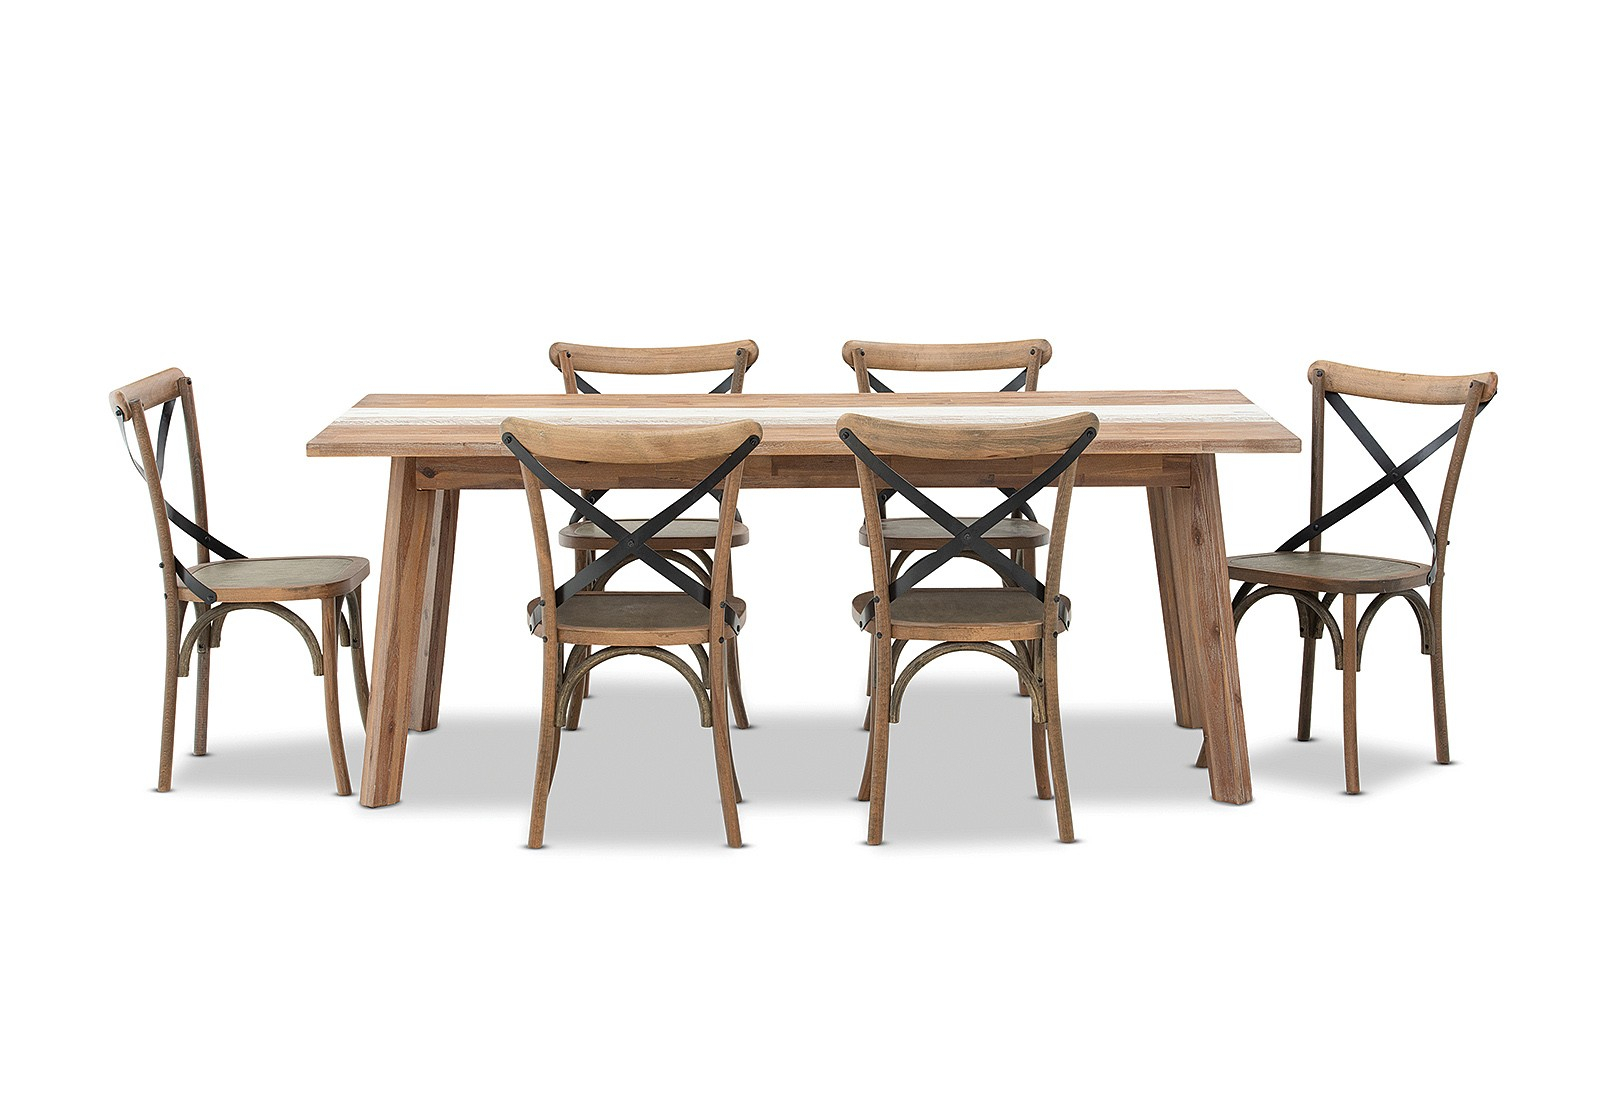 7 Piece Dining Sets | Amart Furniture With Regard To 2017 Shepparton Vintage 3 Piece Dining Sets (Photo 17 of 20)